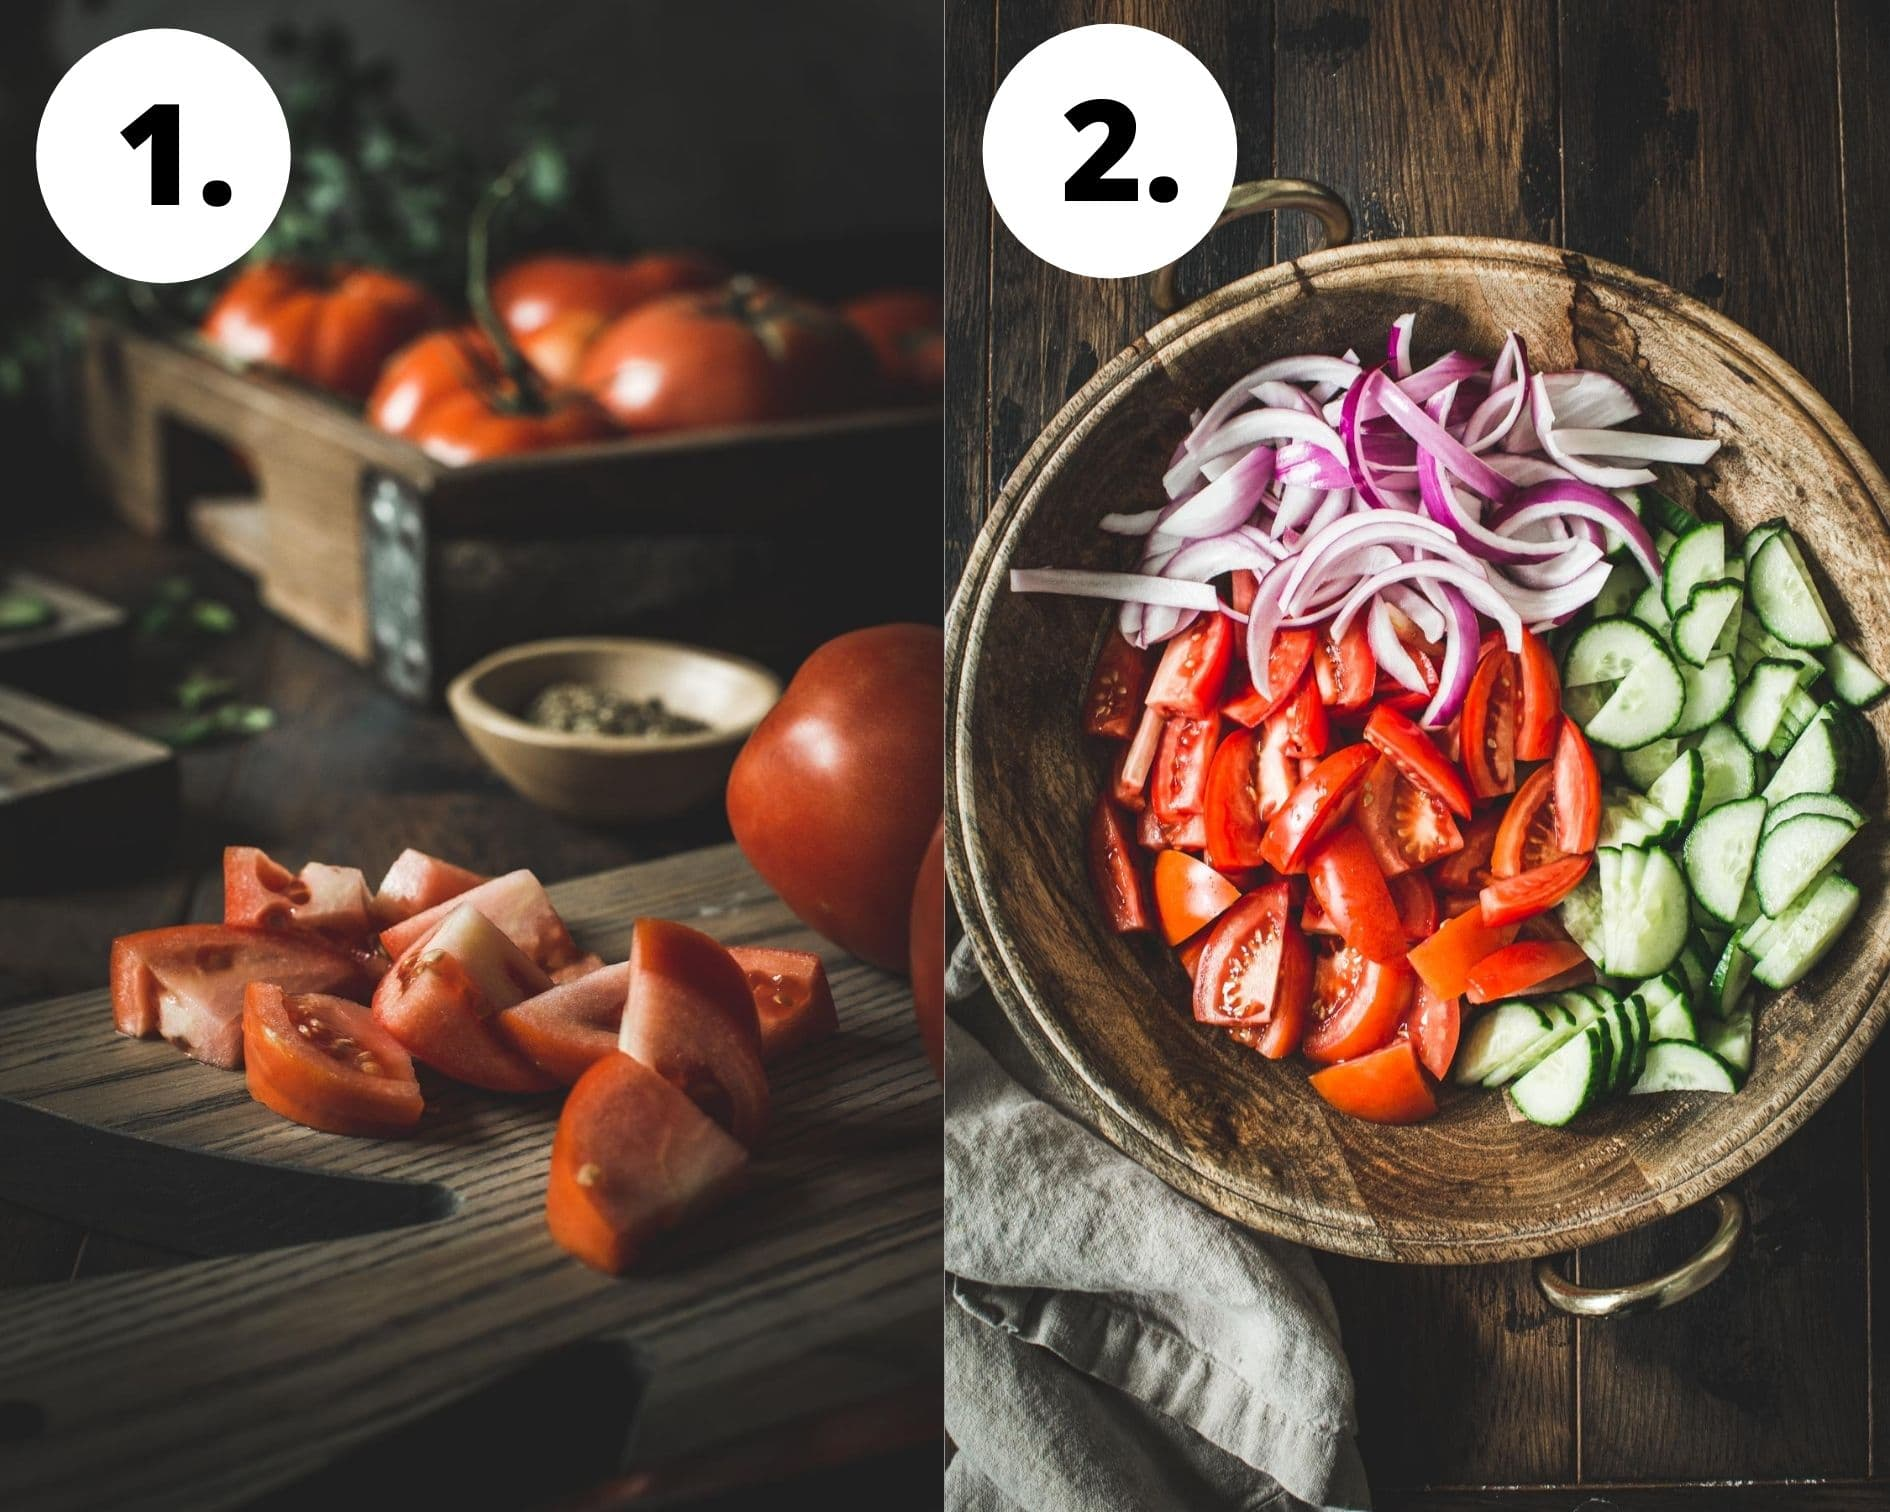 Cucumber, onion, and tomato salad process steps 1 and 2.